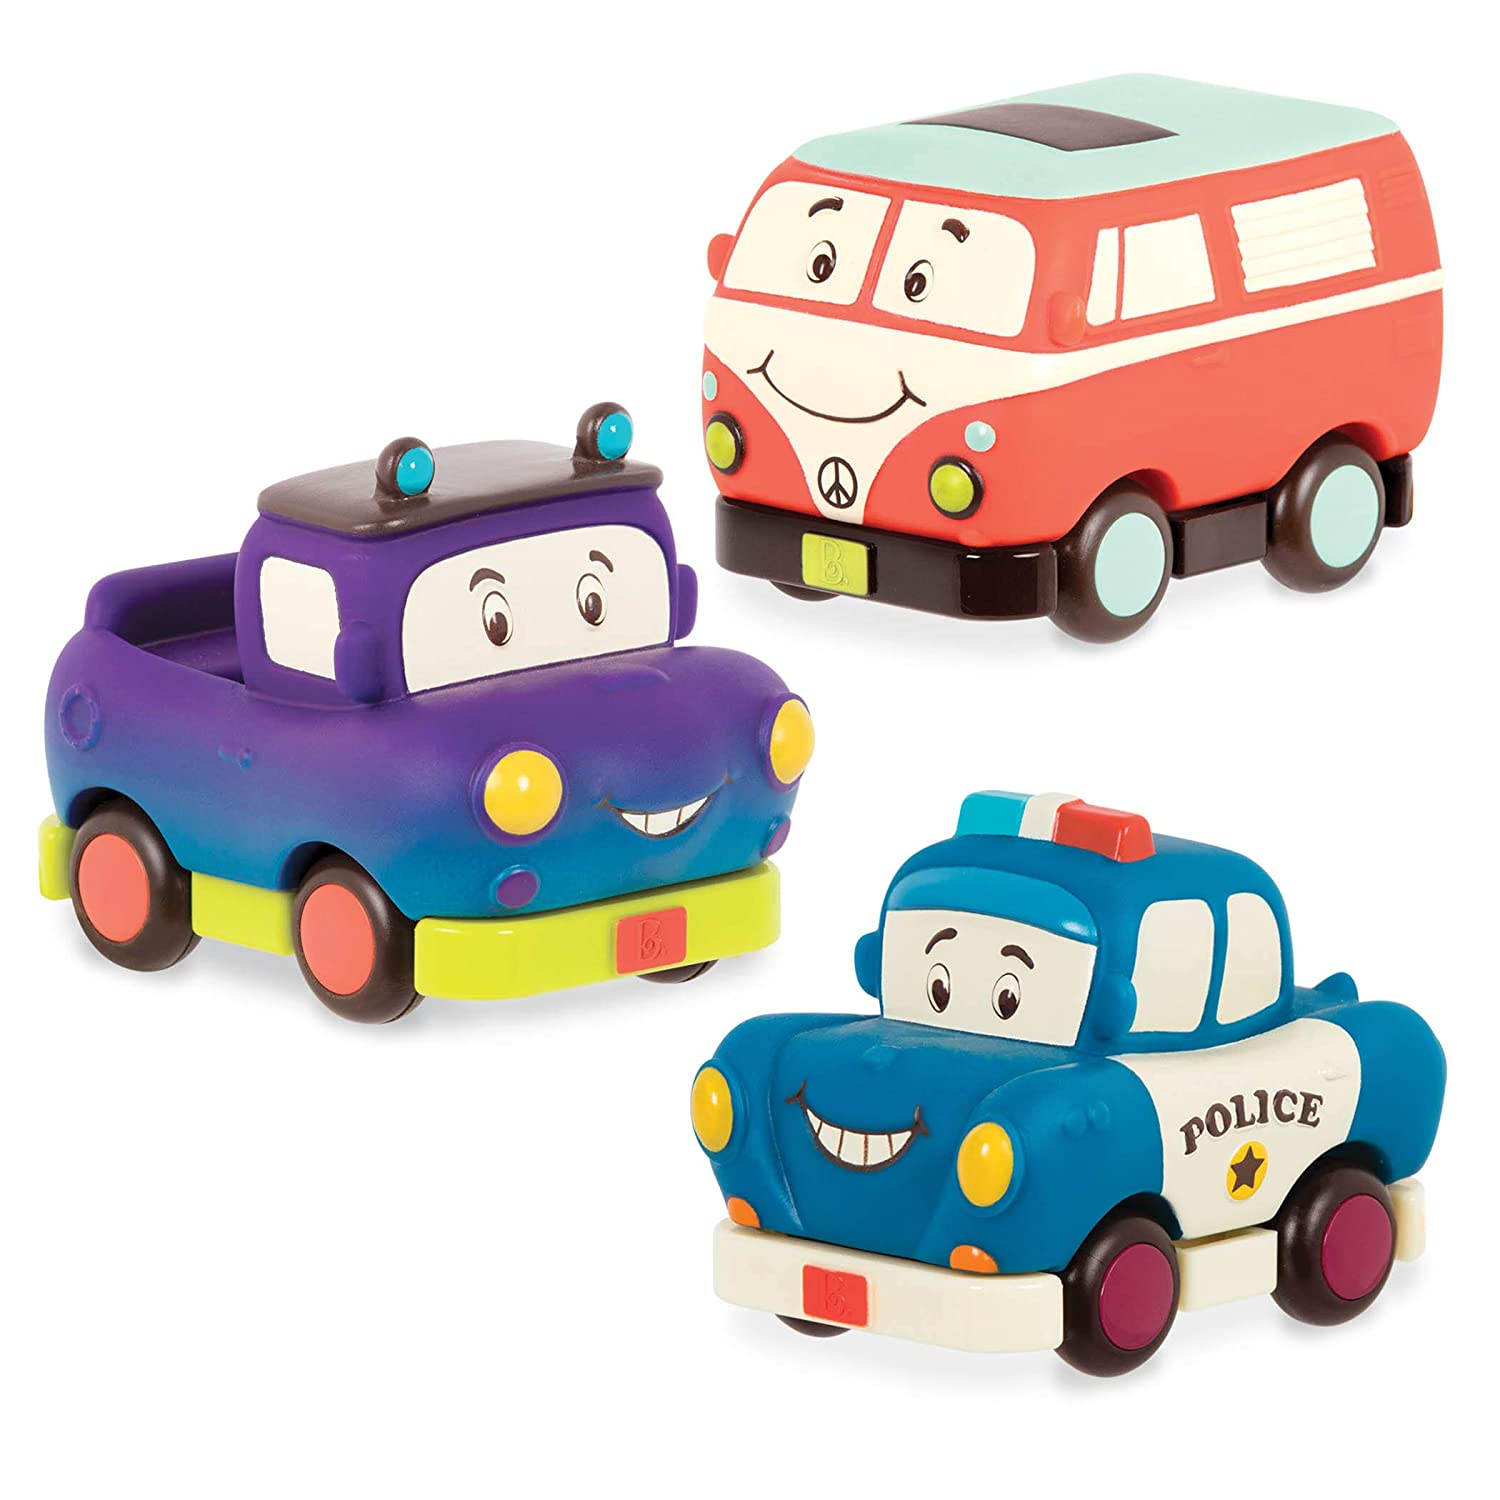 B Toys Set of 3 Pull-Back Toy Cars for Kids 1 Year + Mini-Wheeeels 3-Mini Toy Vehicles Cars Set 3-Pcs